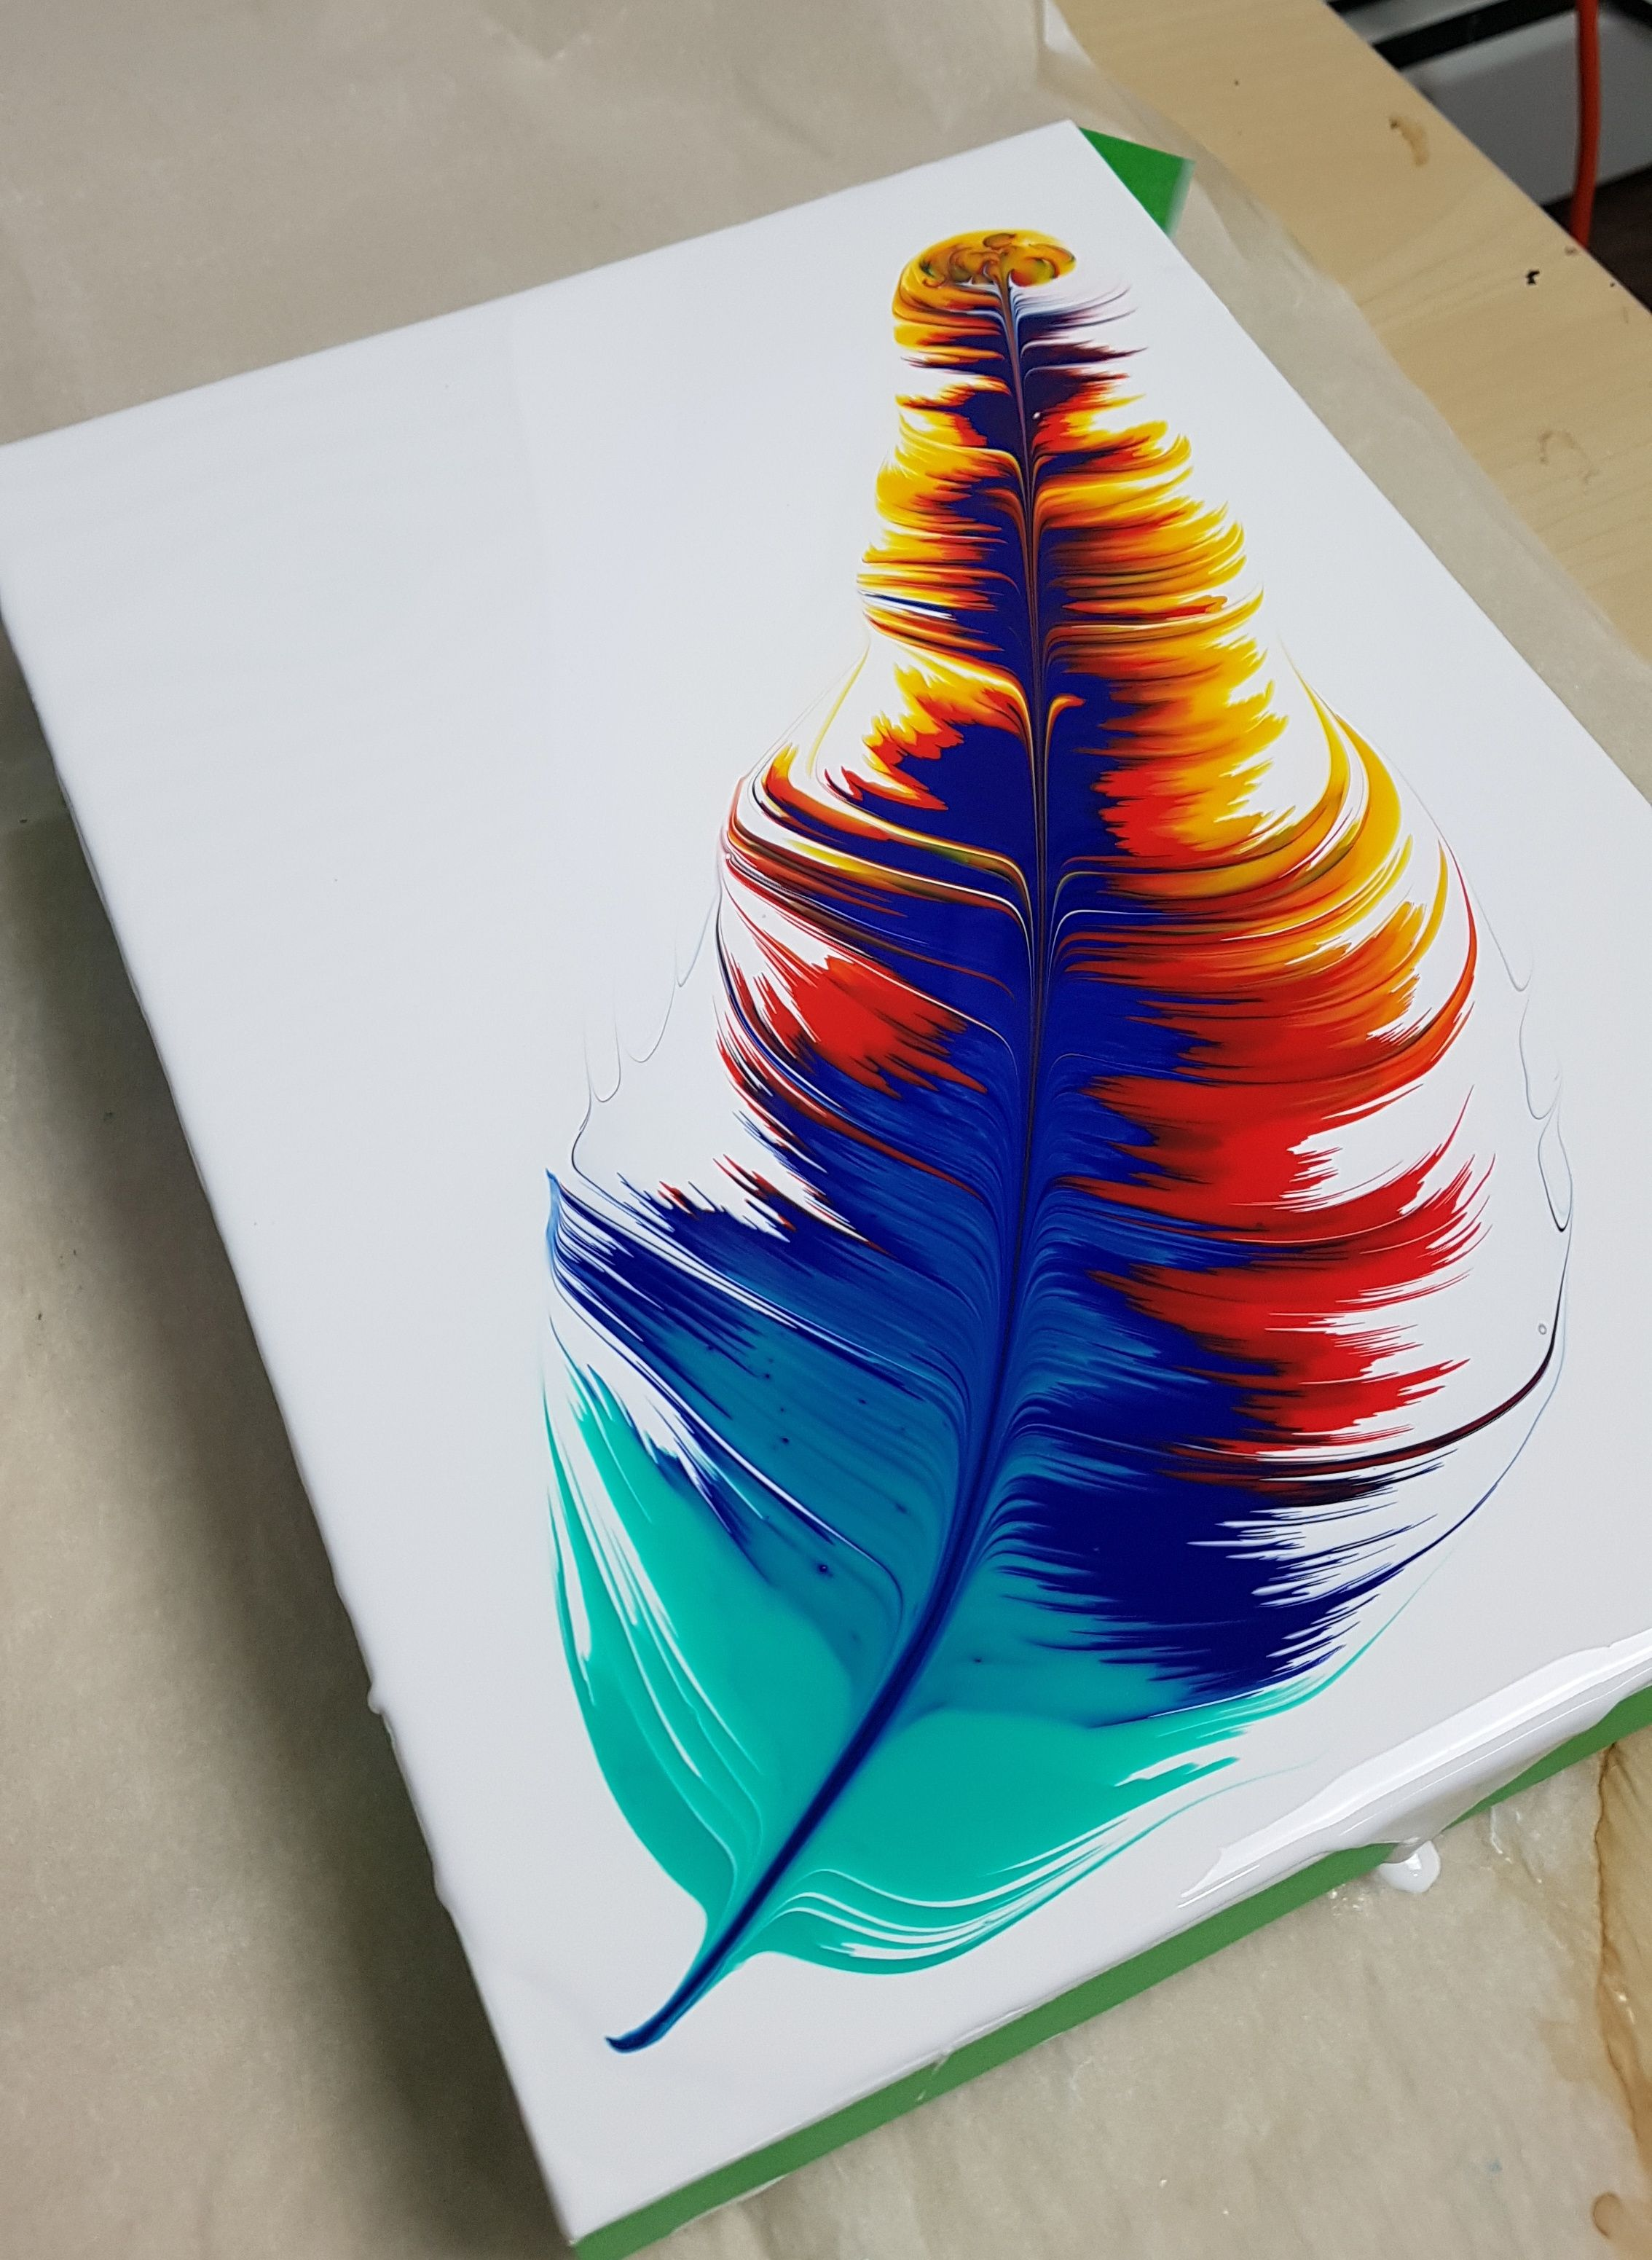 Acrylic Pouring Feather Fluid Art Tutorial By Olga Soby From